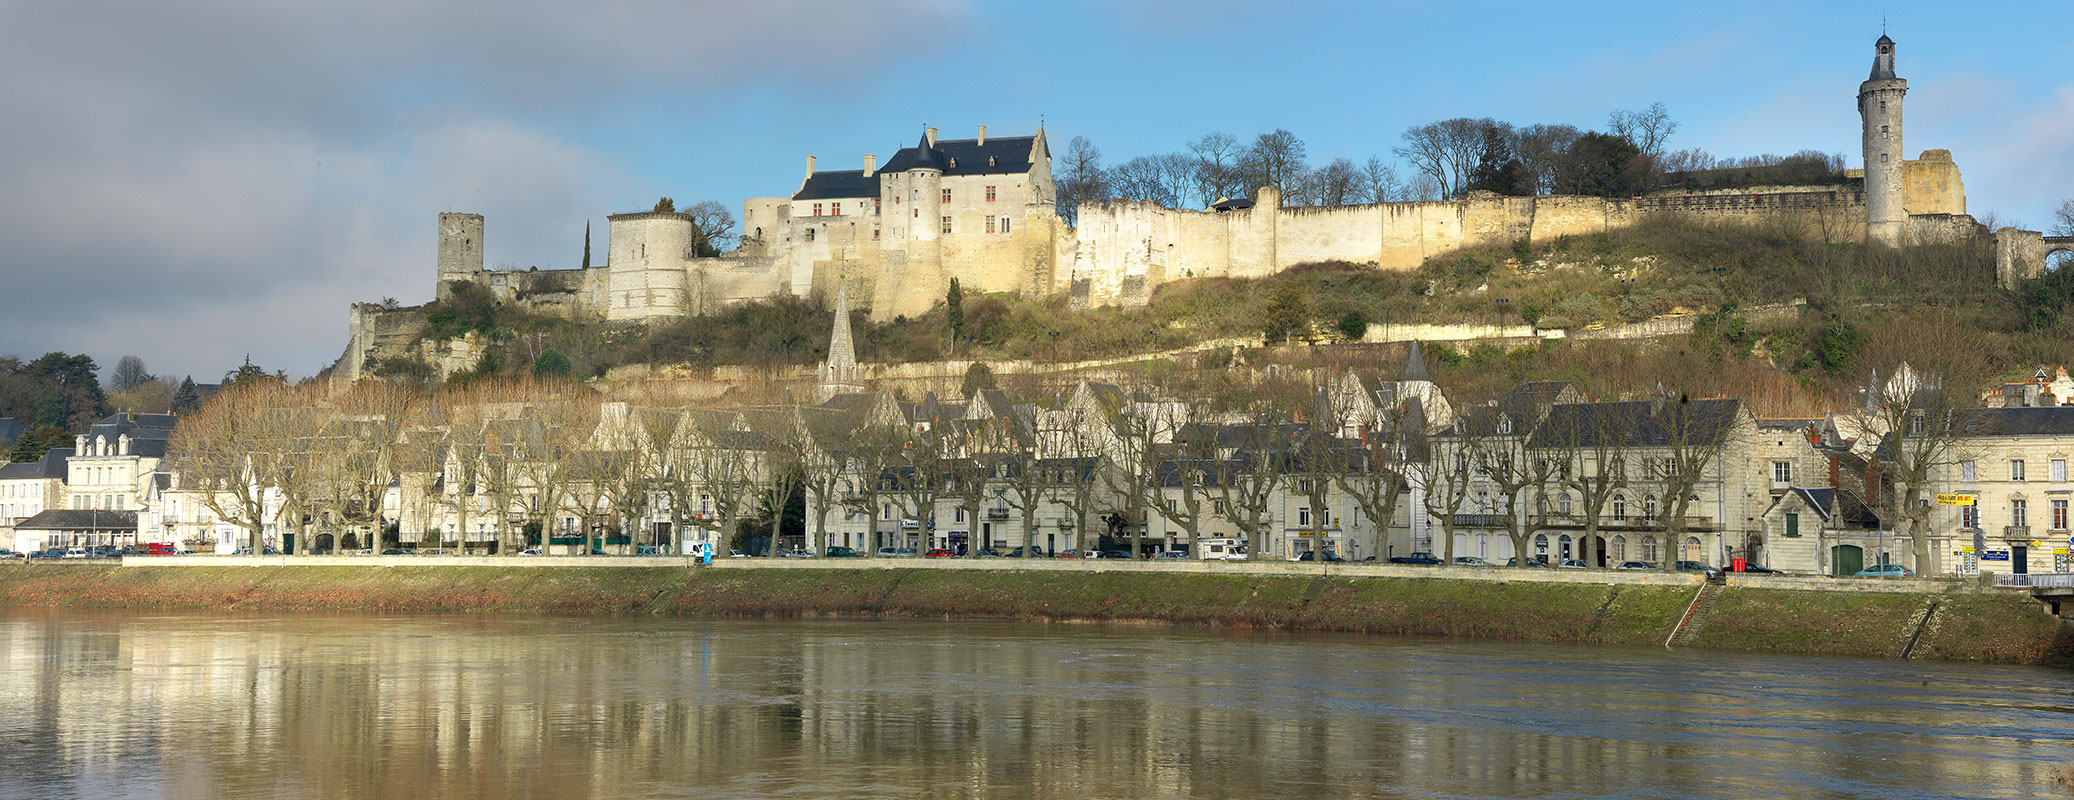 Fr Reference Chinon Castle Asselin Inc